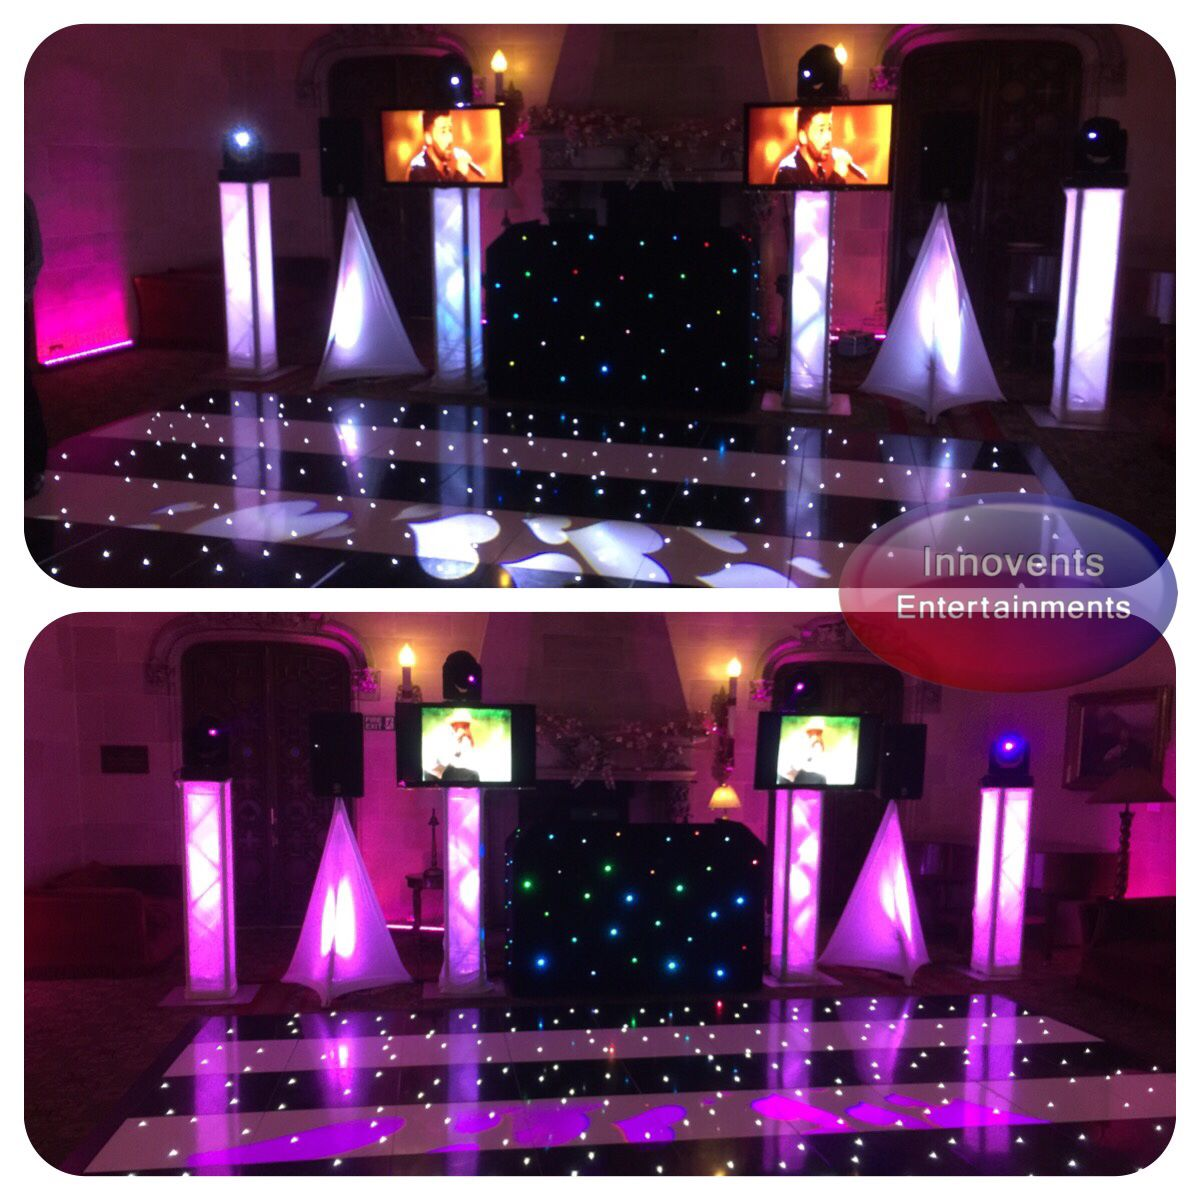 Black And White Themed Led Dance Floor To Sparkle For A Wedding With Our Video Dj And Moving Head Lighting Set Dj Equipment For Sale Wedding Dj Setup Led Dance